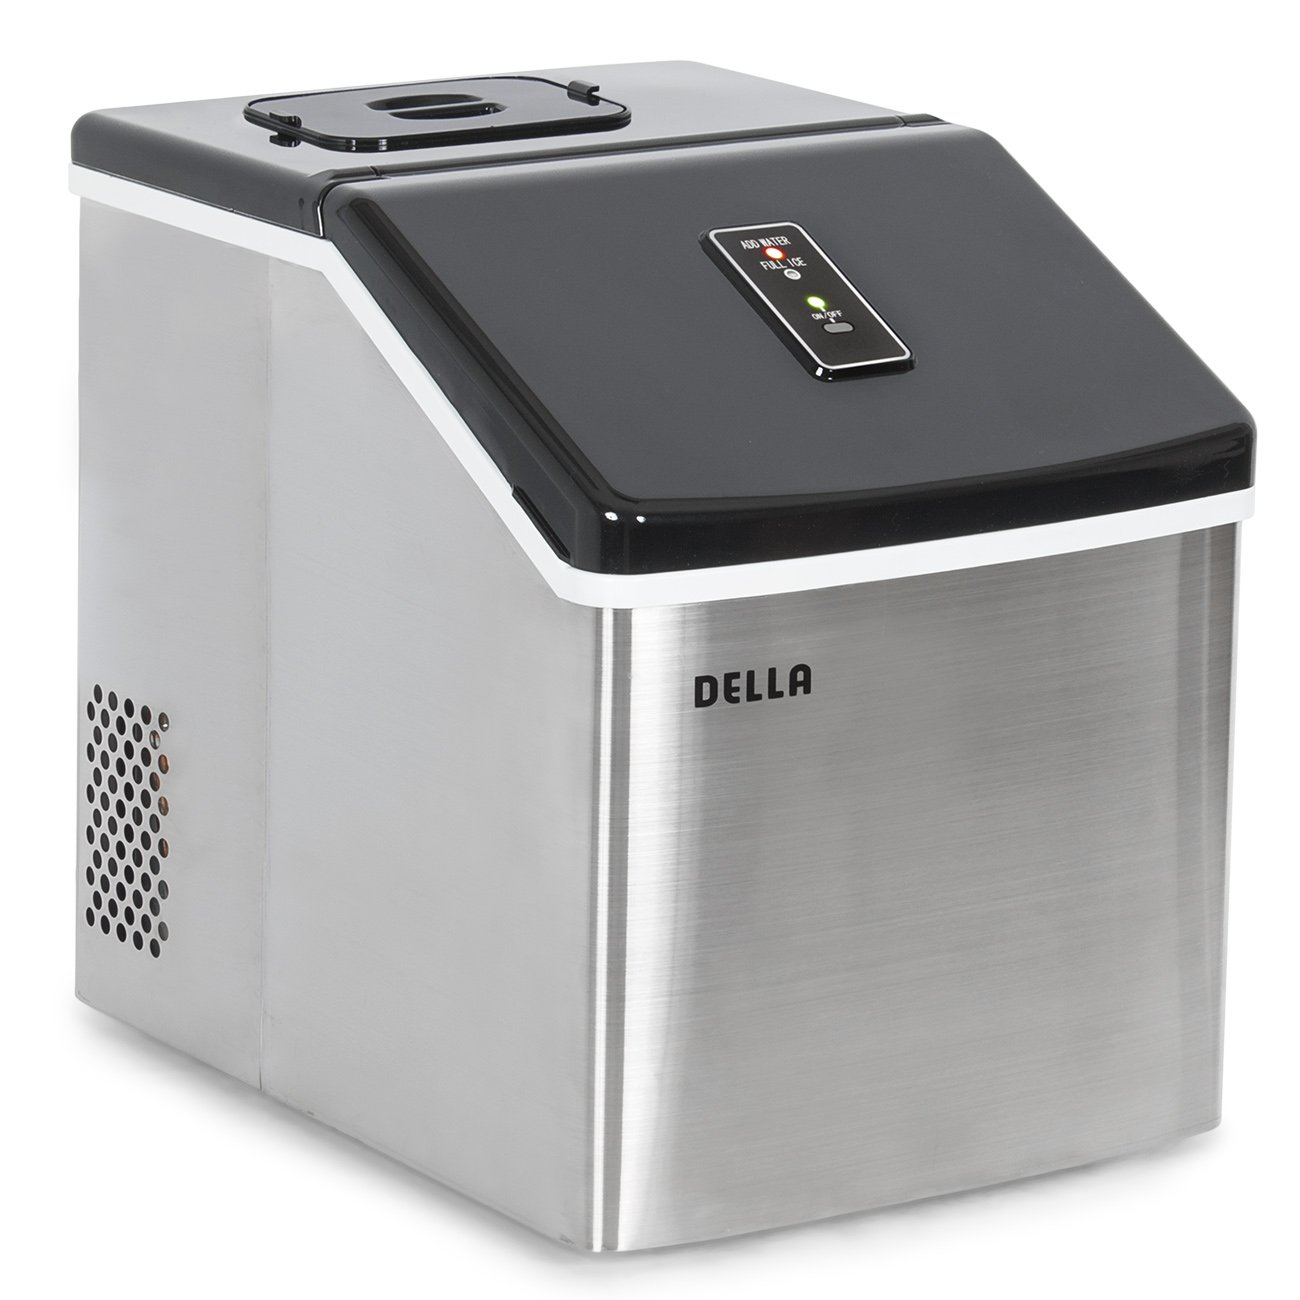 c45551ffd28 Della Electric Ice Maker Machine Portable Counter Top Yield Up To 28 Pounds  of Ice Daily ...